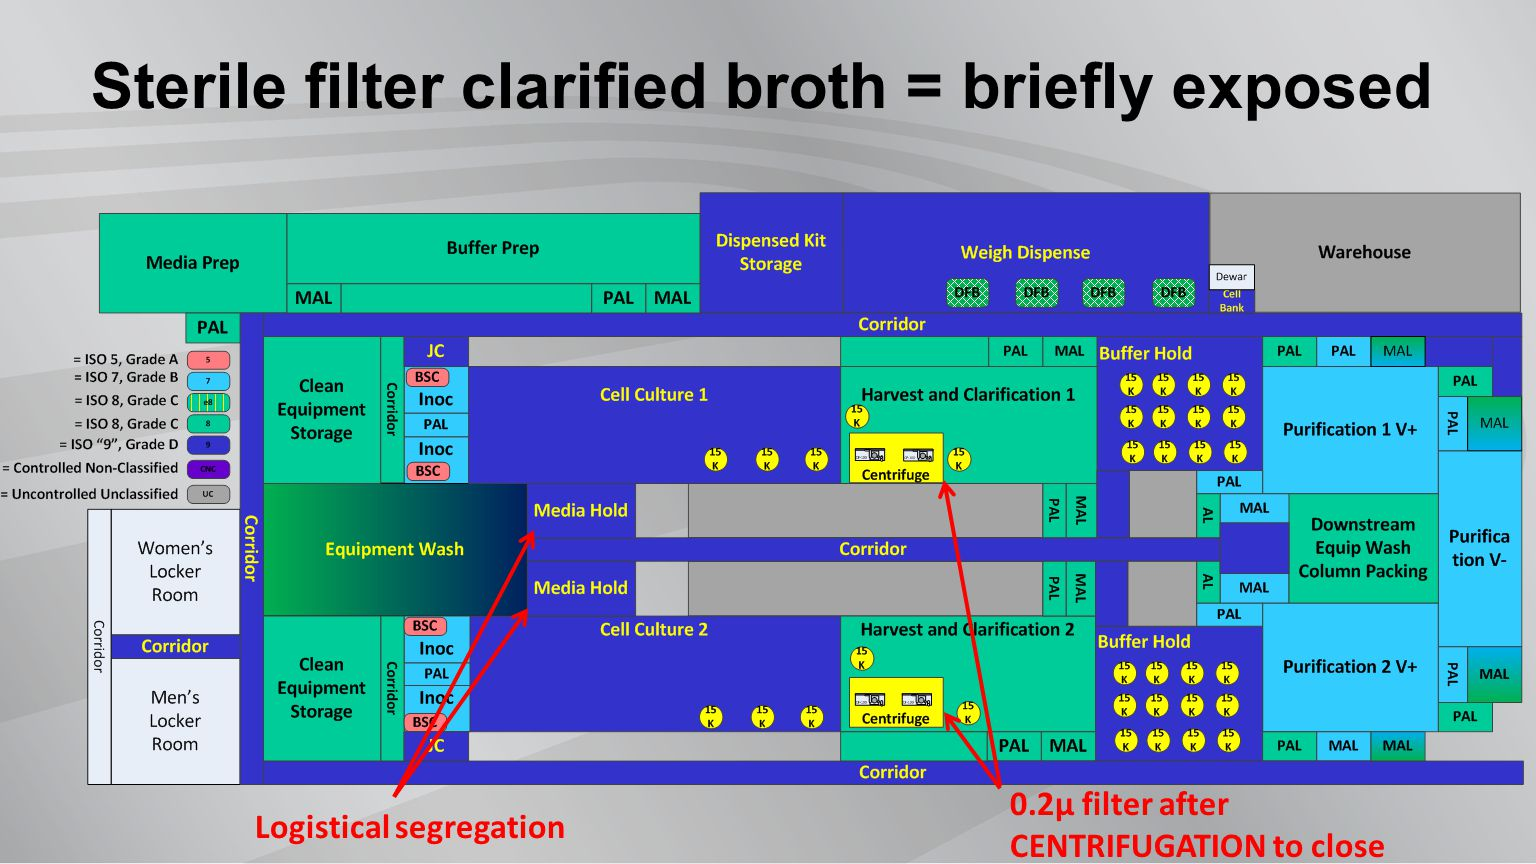 Sterile filter clarified broth = briefly exposed 0.2µ filter after CENTRIFUGATION to close Logistical segregation